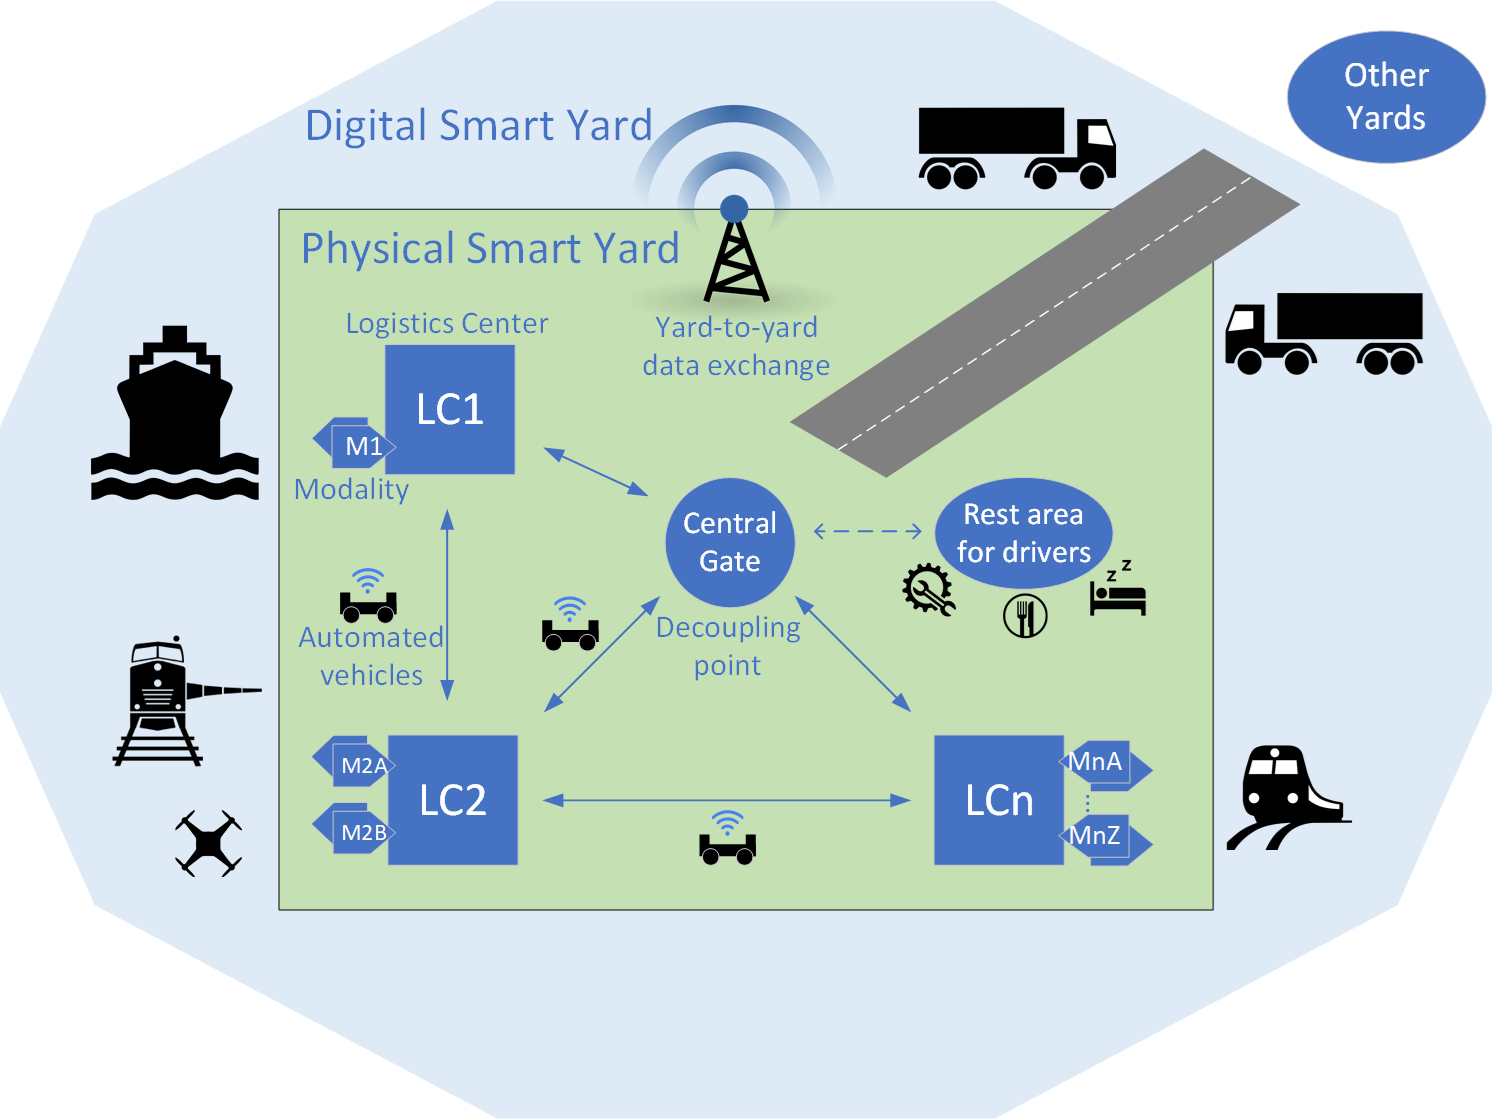 5 simulation studies in CATALYST to improve safety and efficiency at smart yards